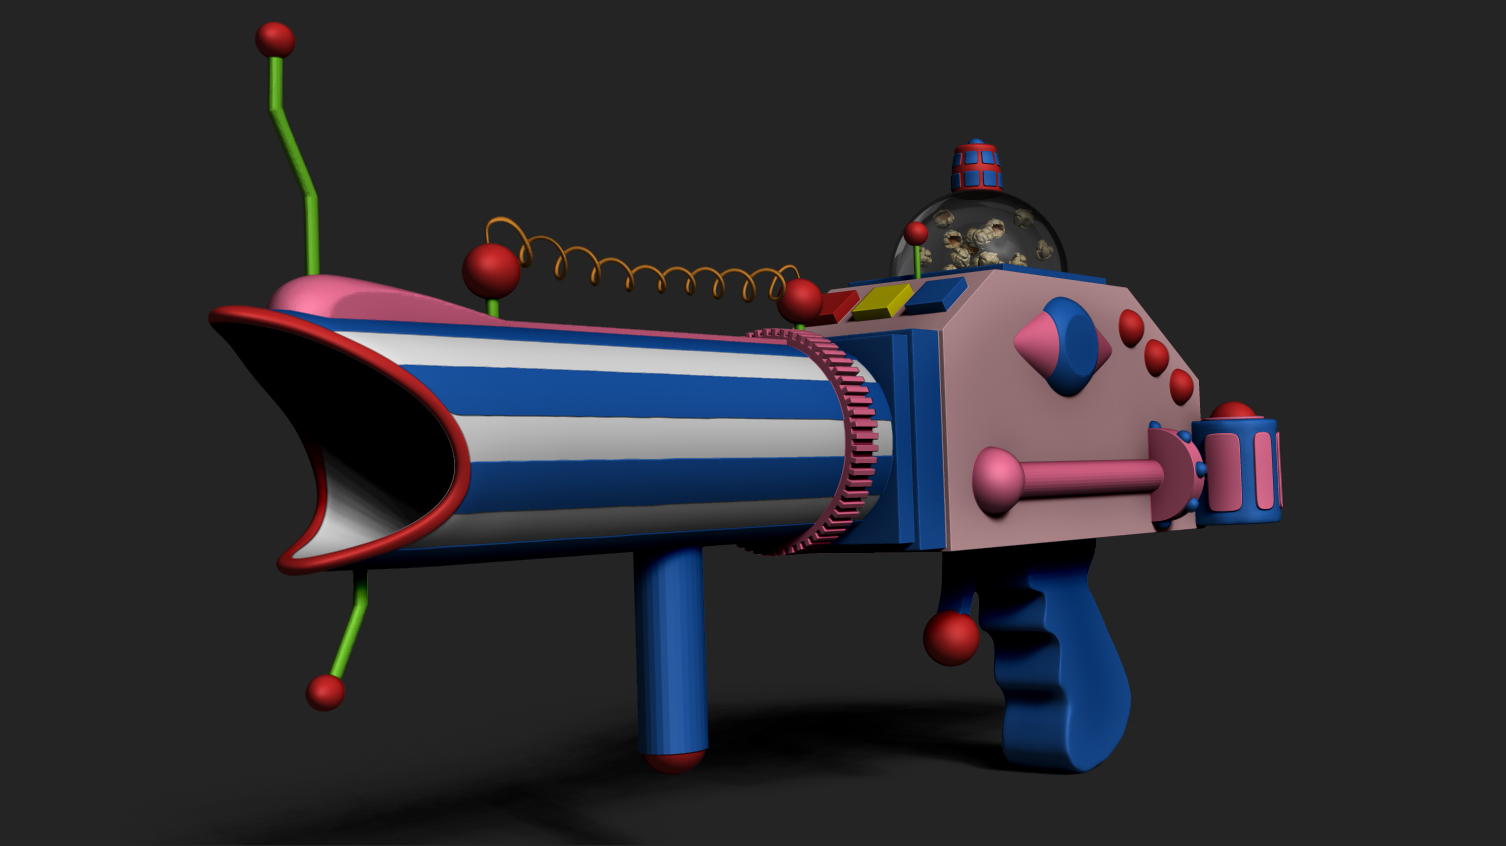 Popcorn gun killer klowns from outer space wip 2 by for Killer klowns 2